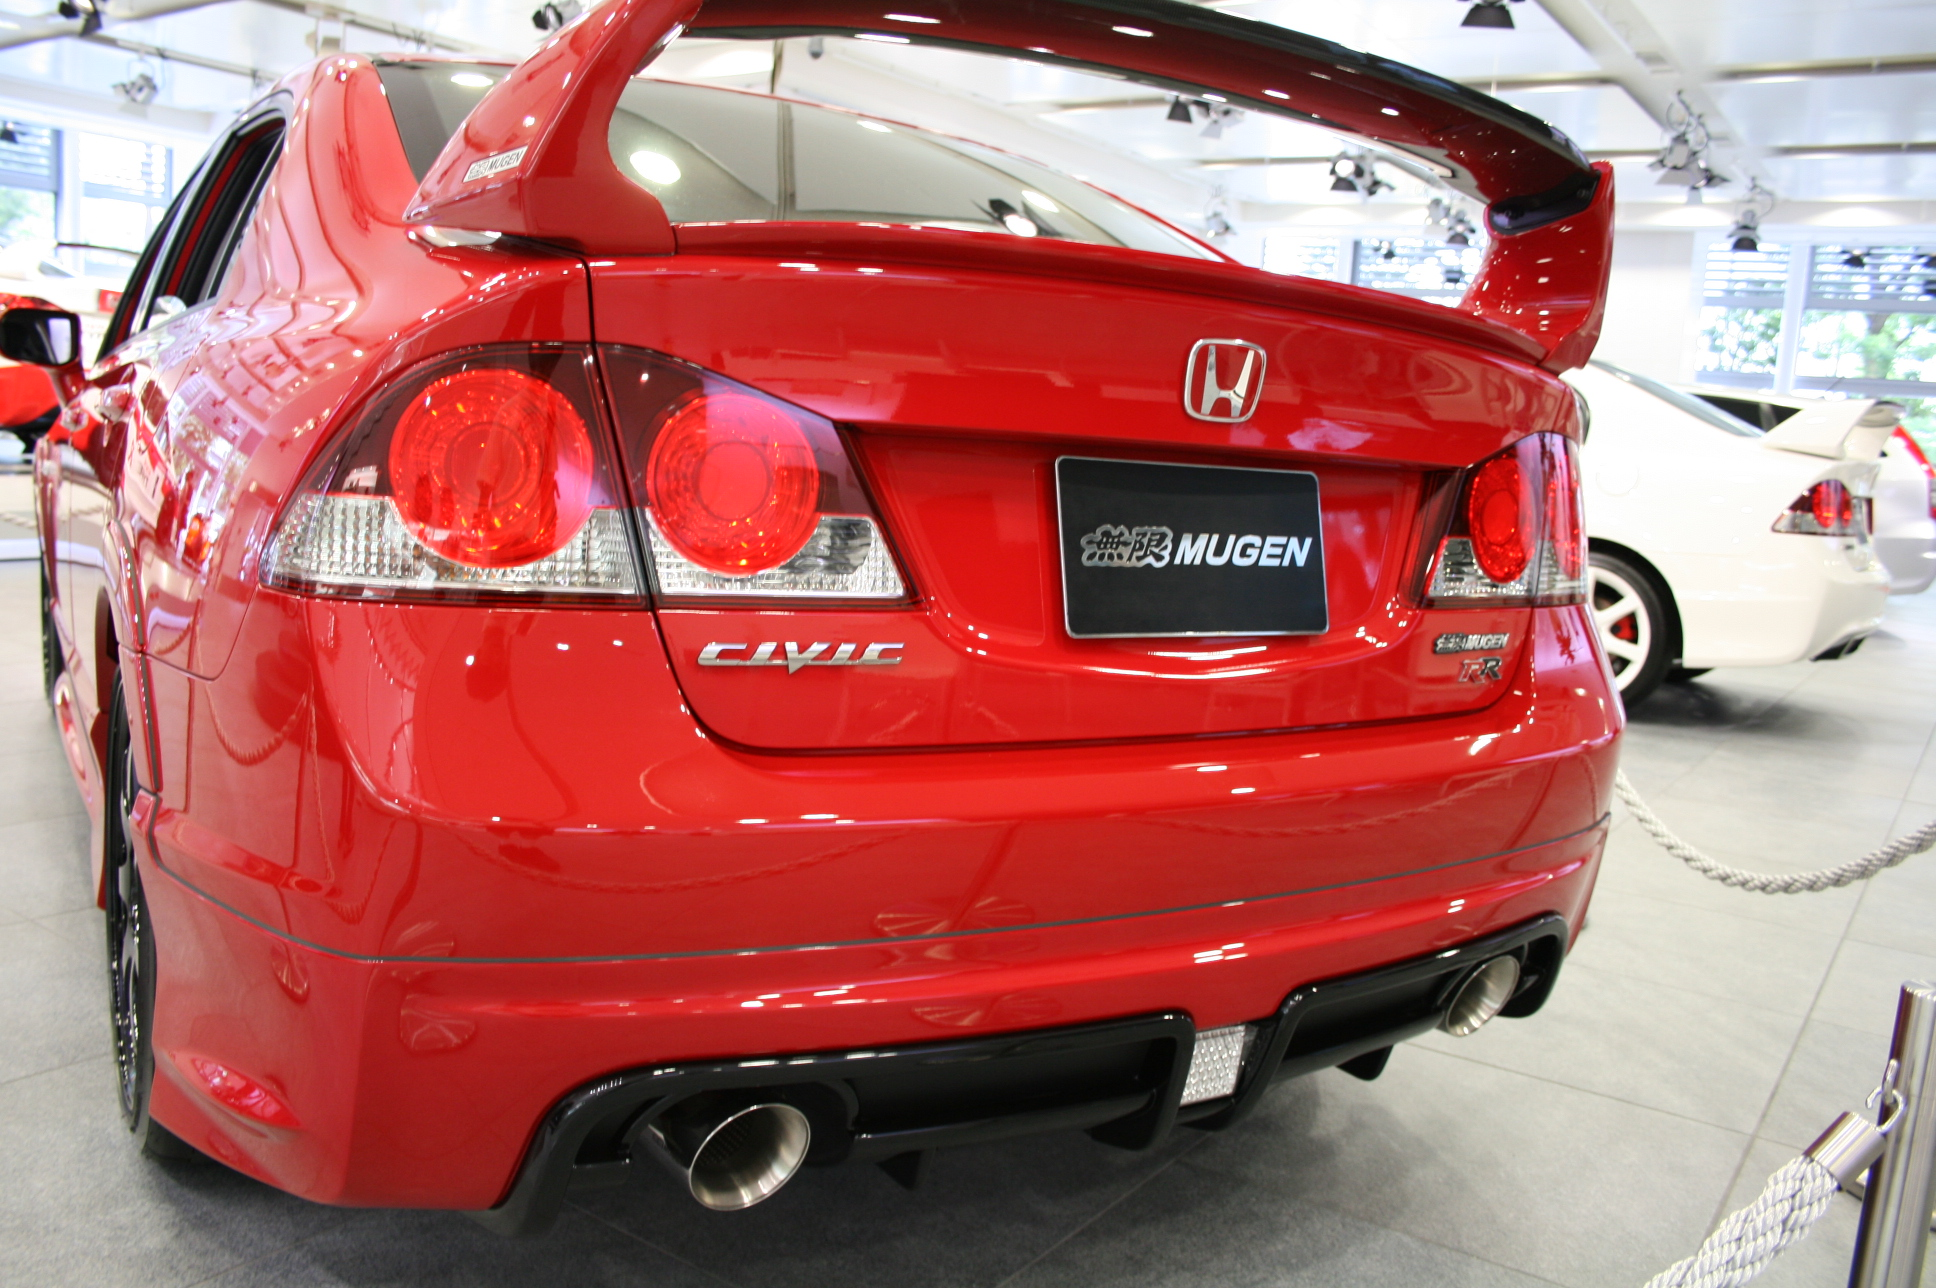 Honda Civic Mugen RR New Car